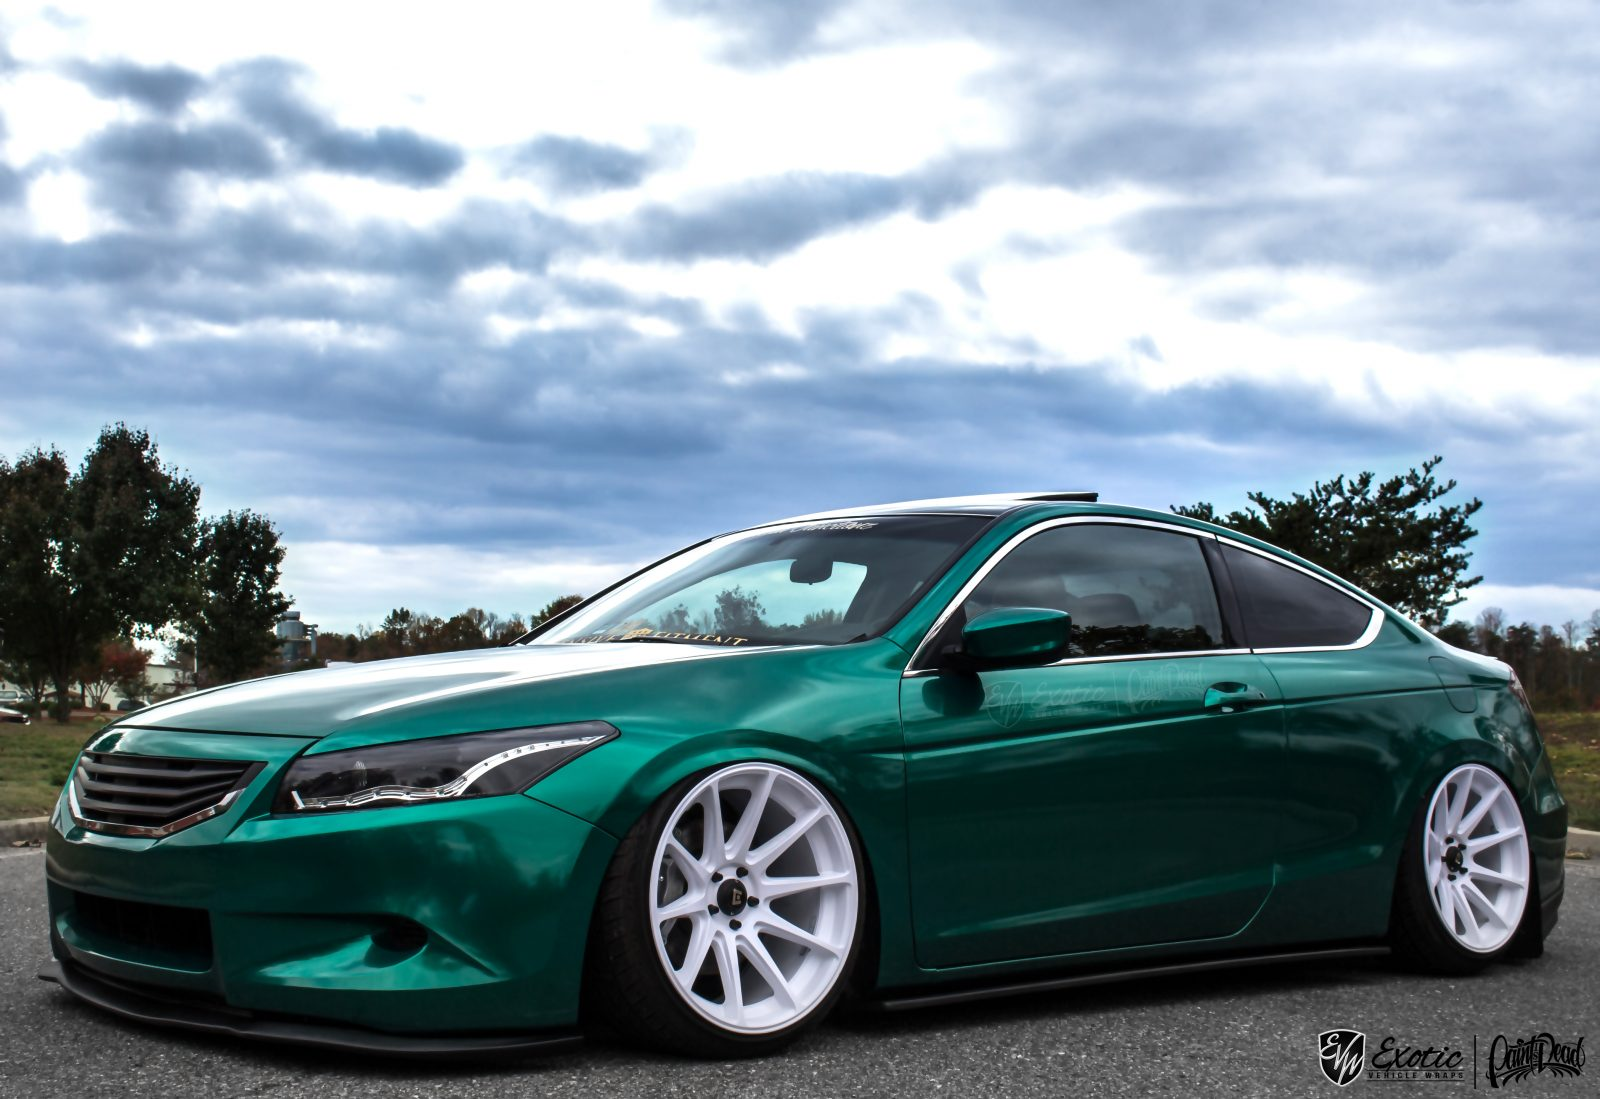 Avery Emerald Green Pearlescent Accord Frontside Wm